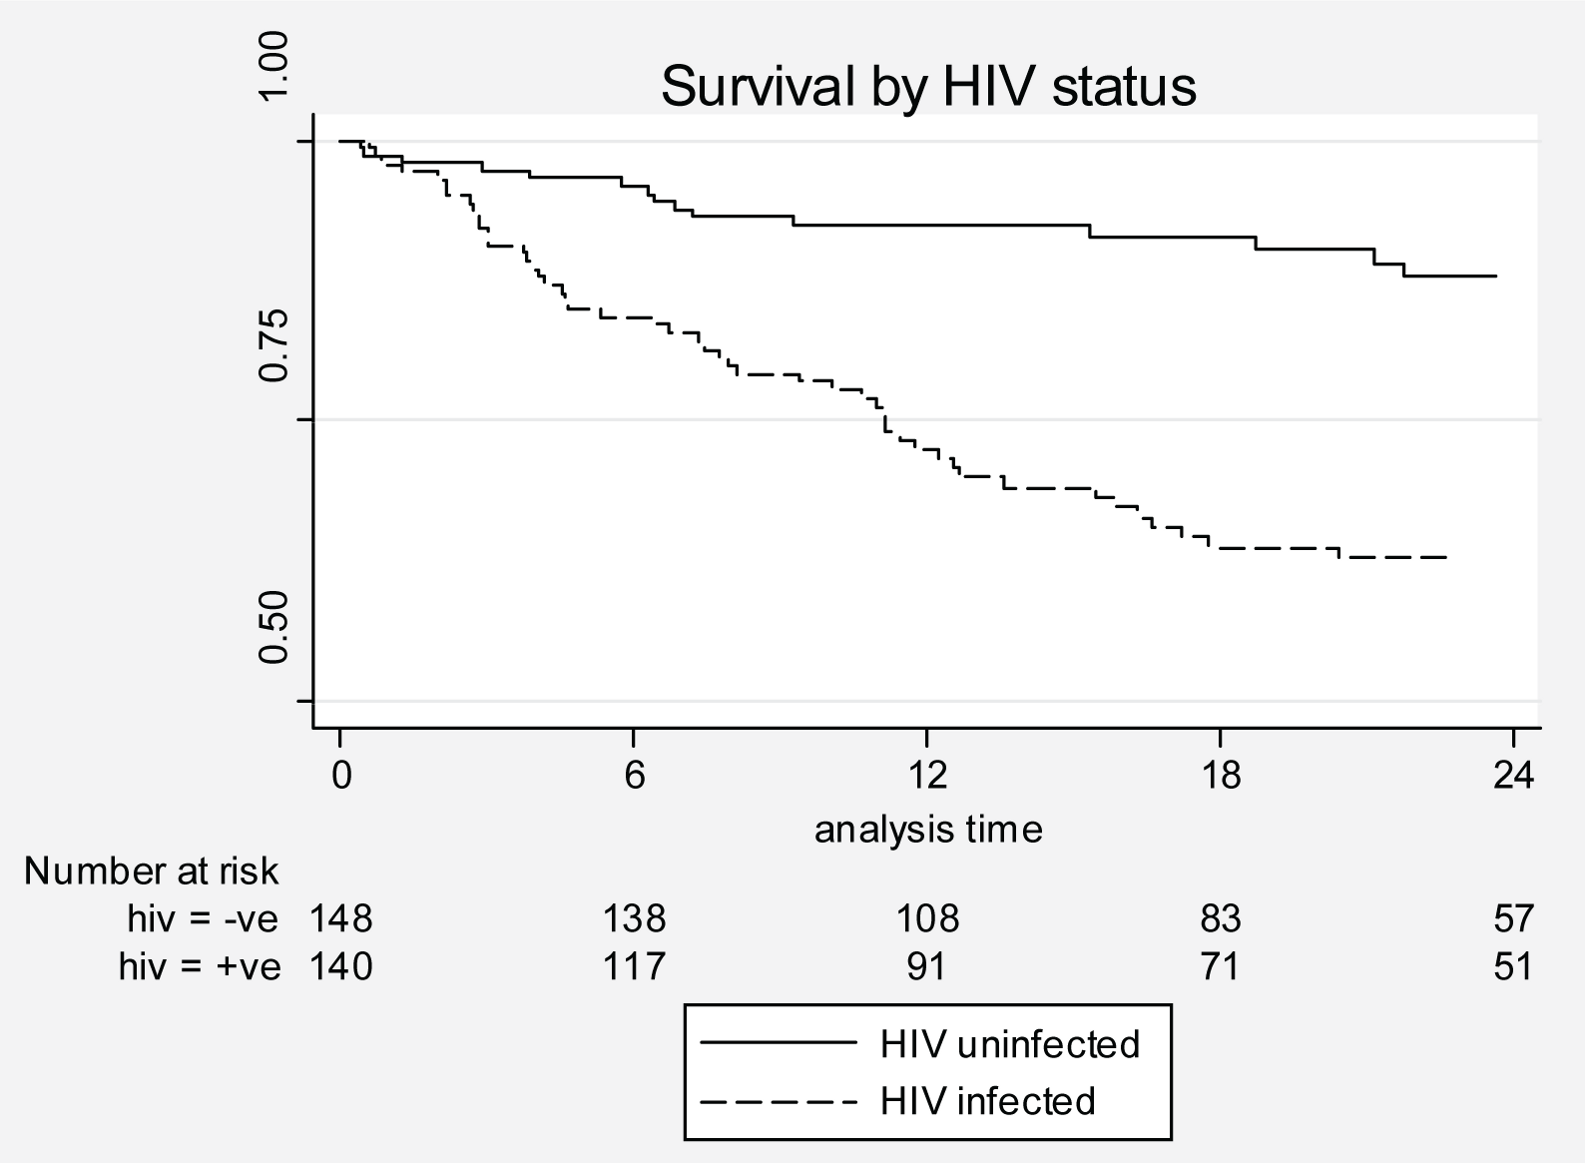 Kaplan-Meier curves by HIV status.